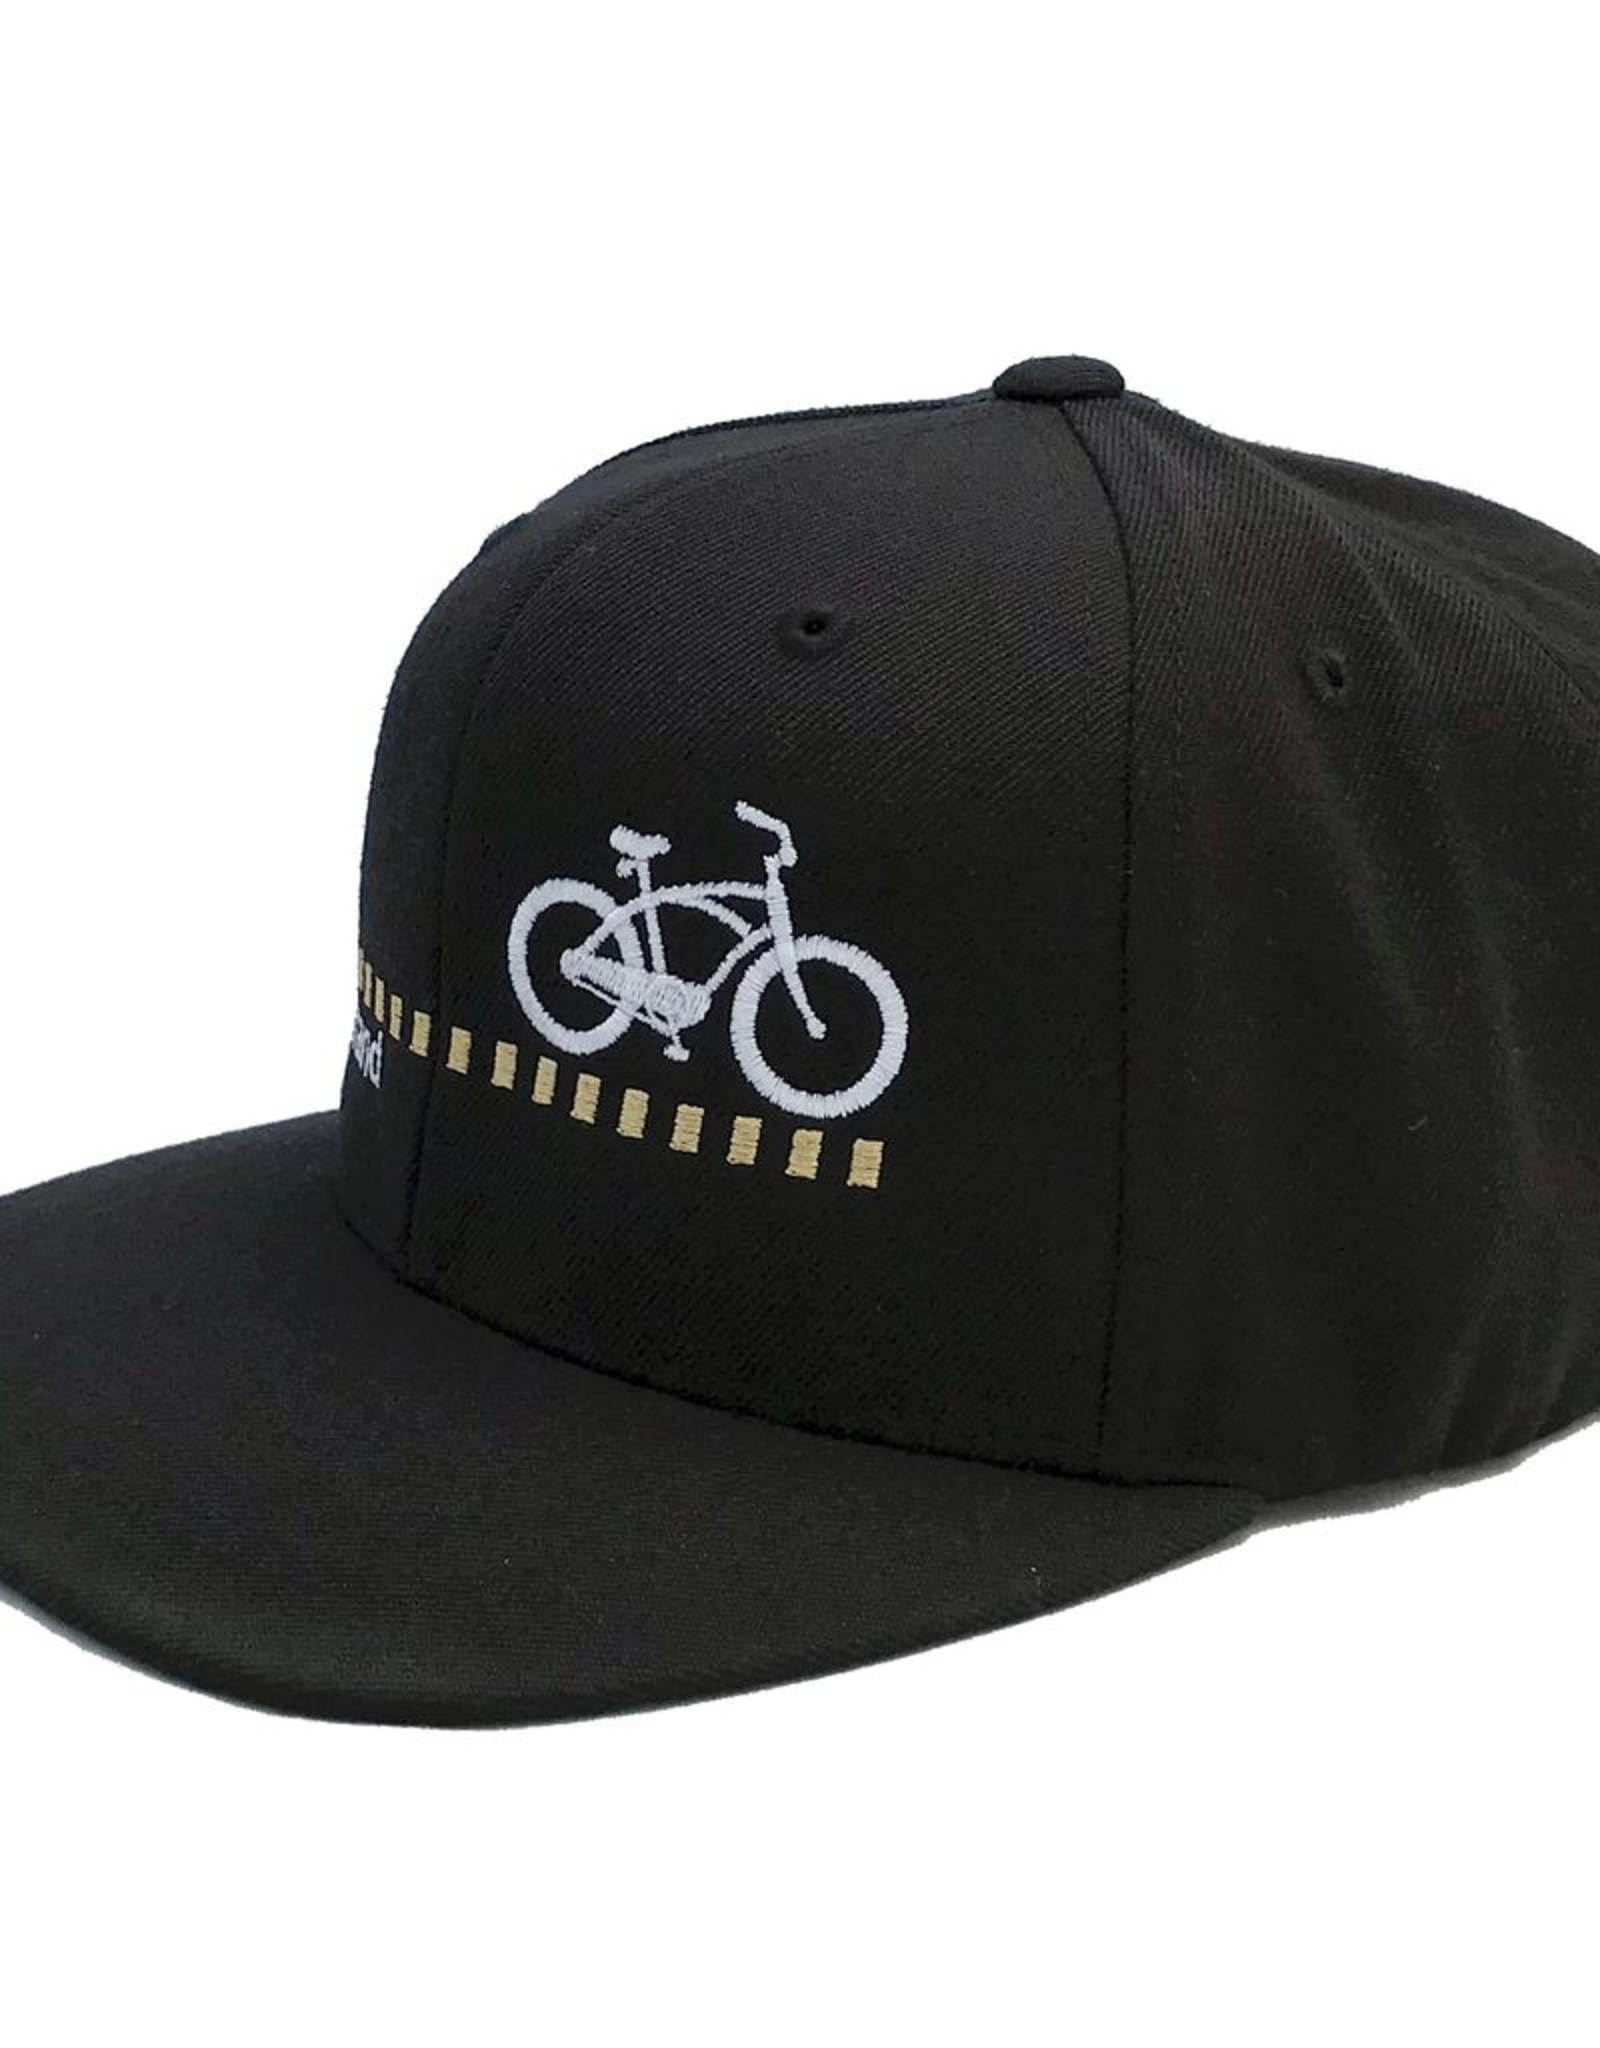 Hermosa Cyclery Hermosa Cyclery - The Strand, Structured Mid-Profile Black Hat - The Classic Yupoong 6089